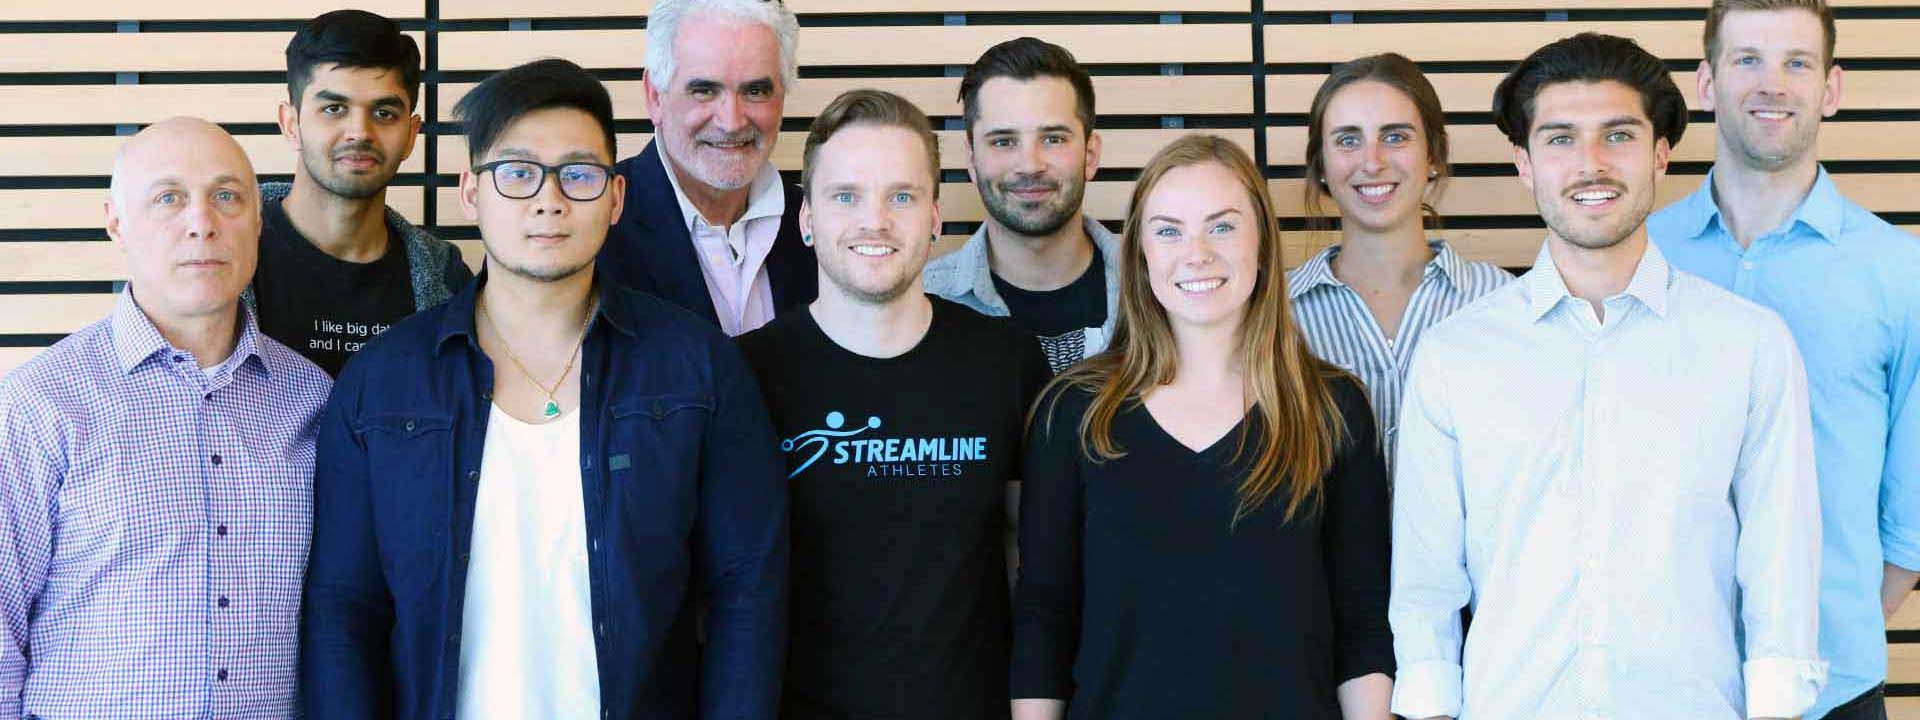 streamline athletes staff